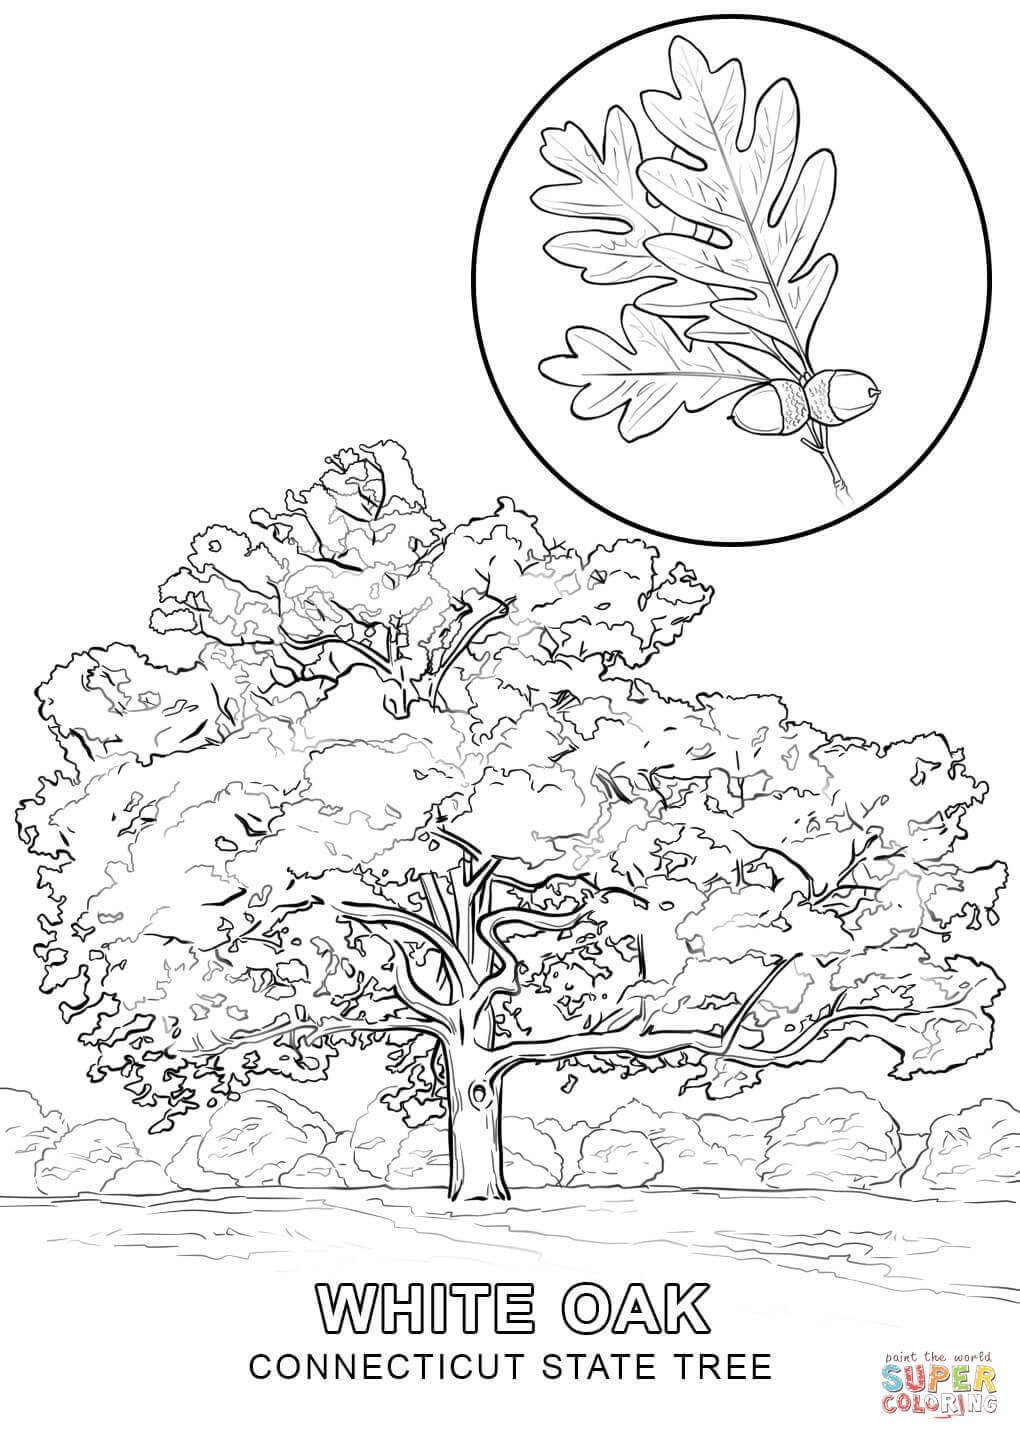 Connecticut State Tree Coloring Page Free Printable Coloring Pages